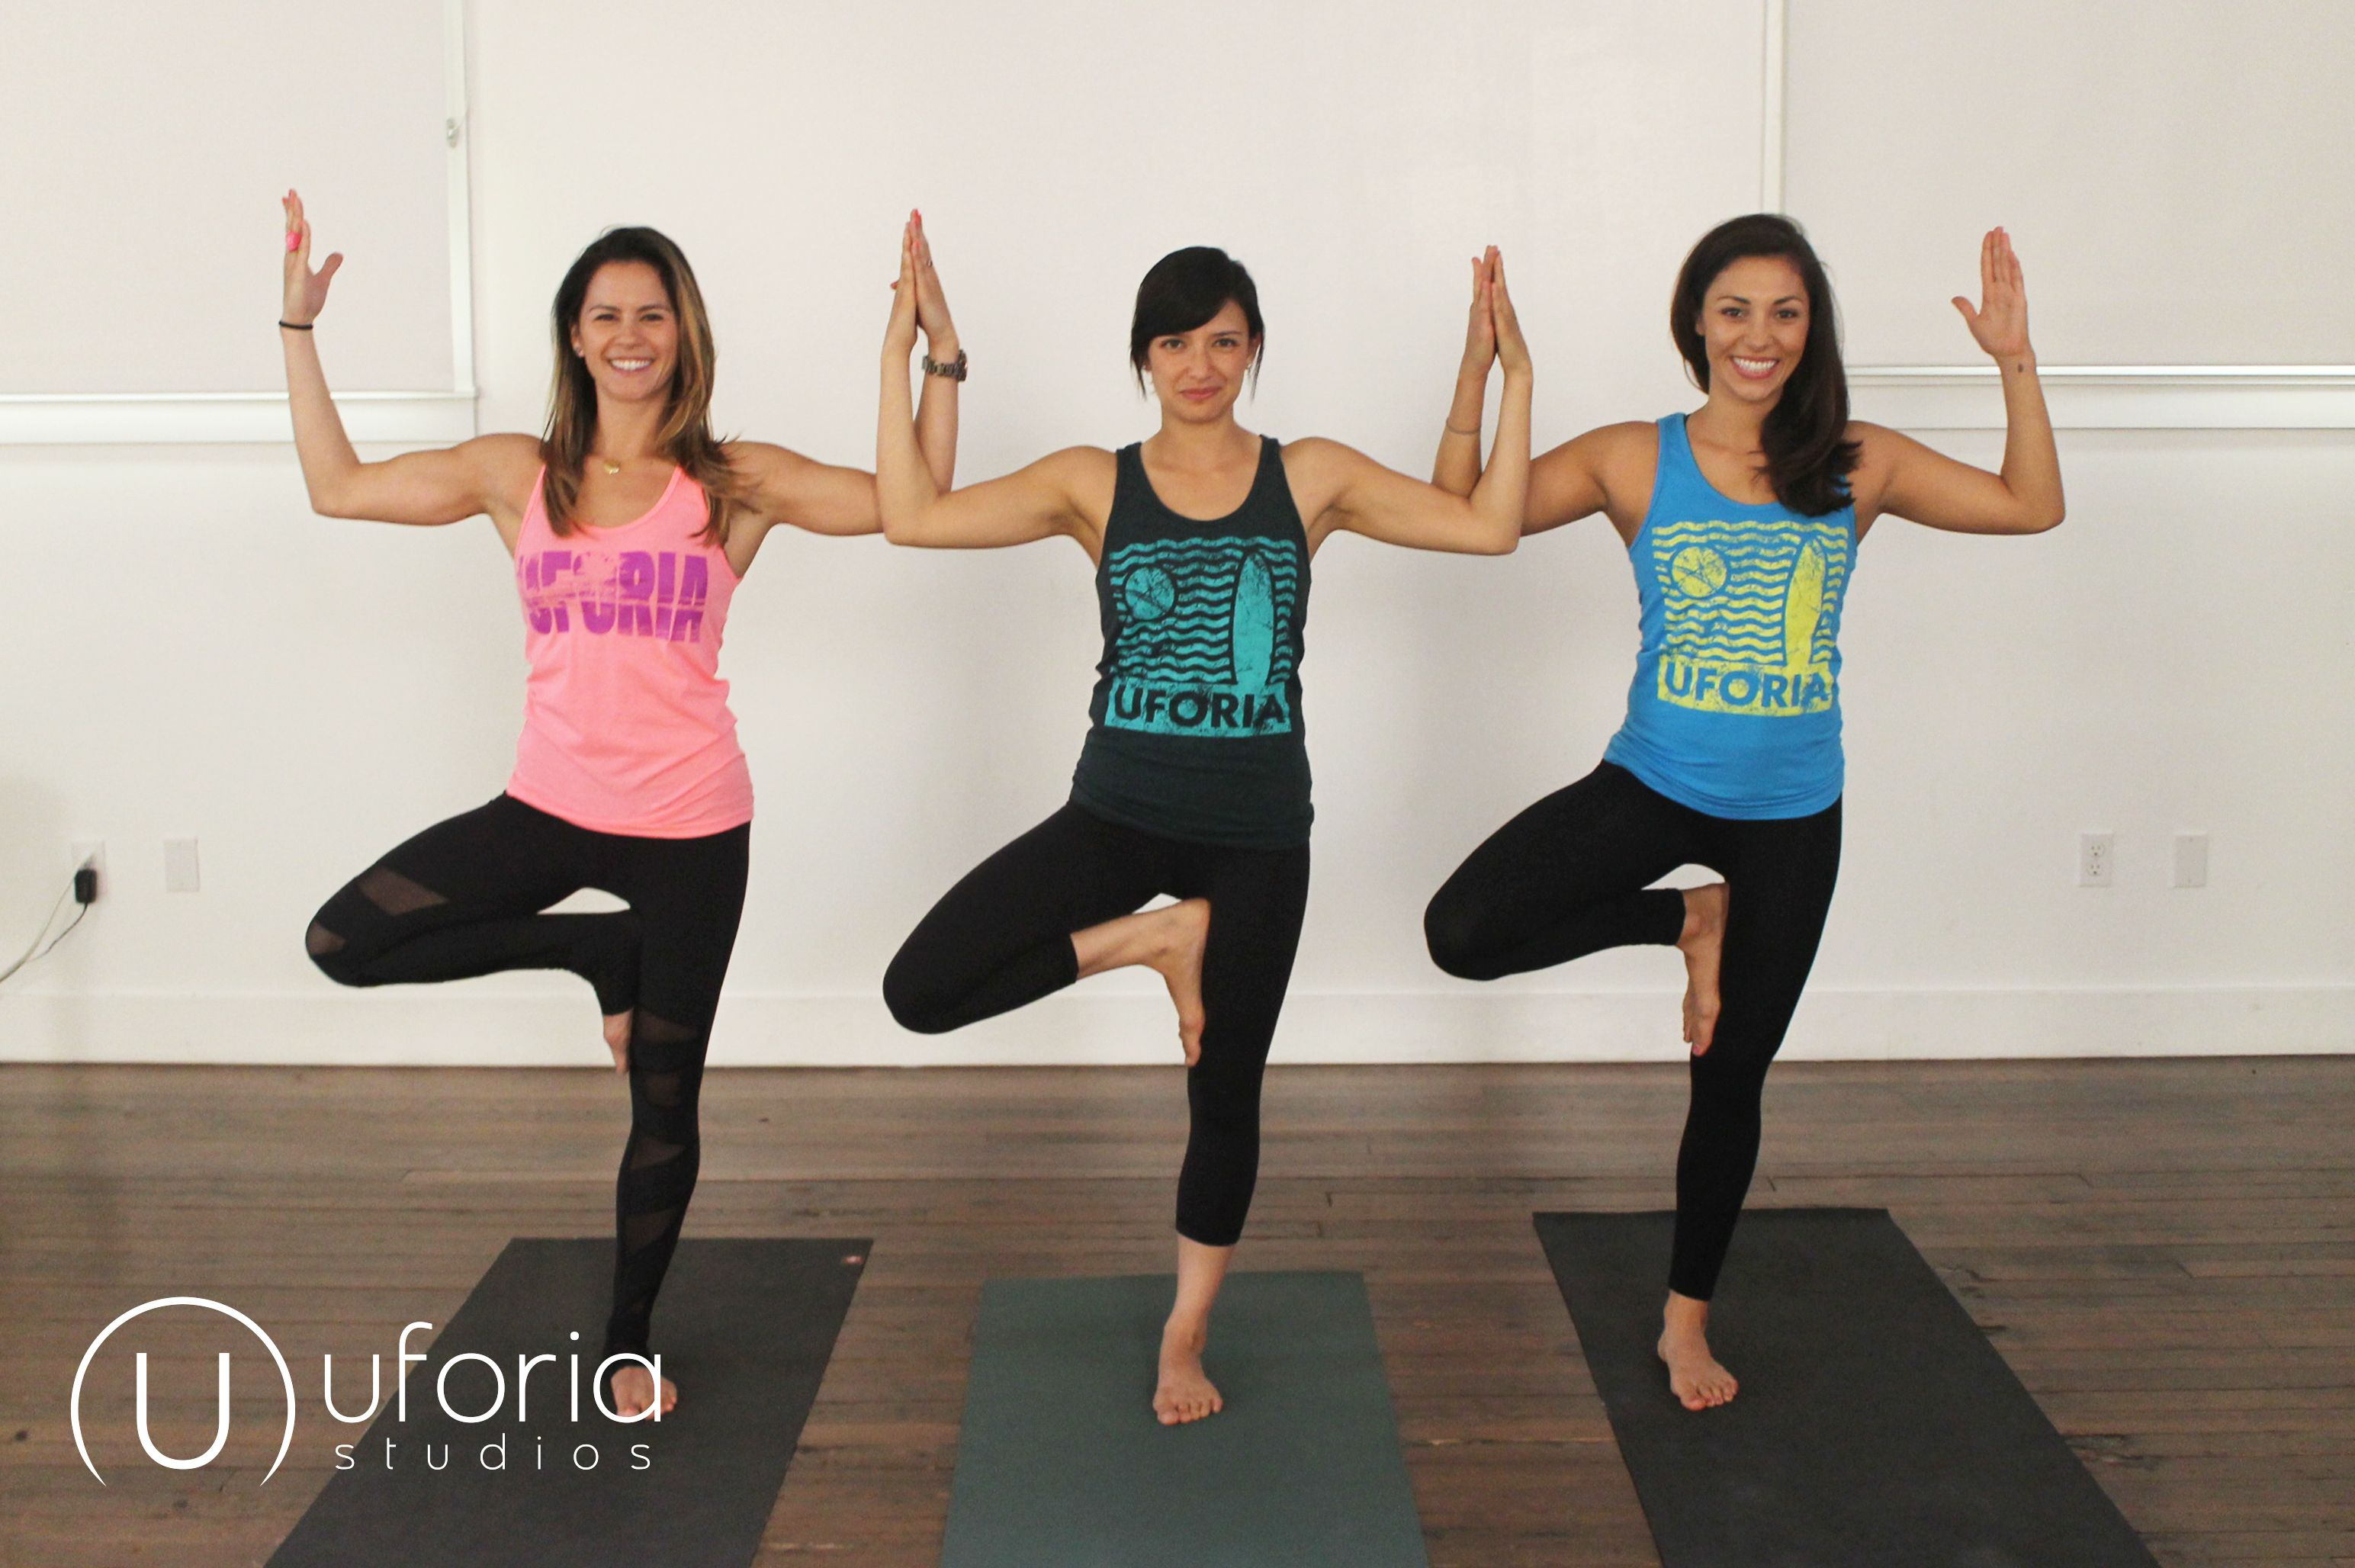 37 Awesome Easy Three Person Yoga Poses In 2021 Group Yoga Poses 3 Person Yoga Poses Three Person Yoga Poses